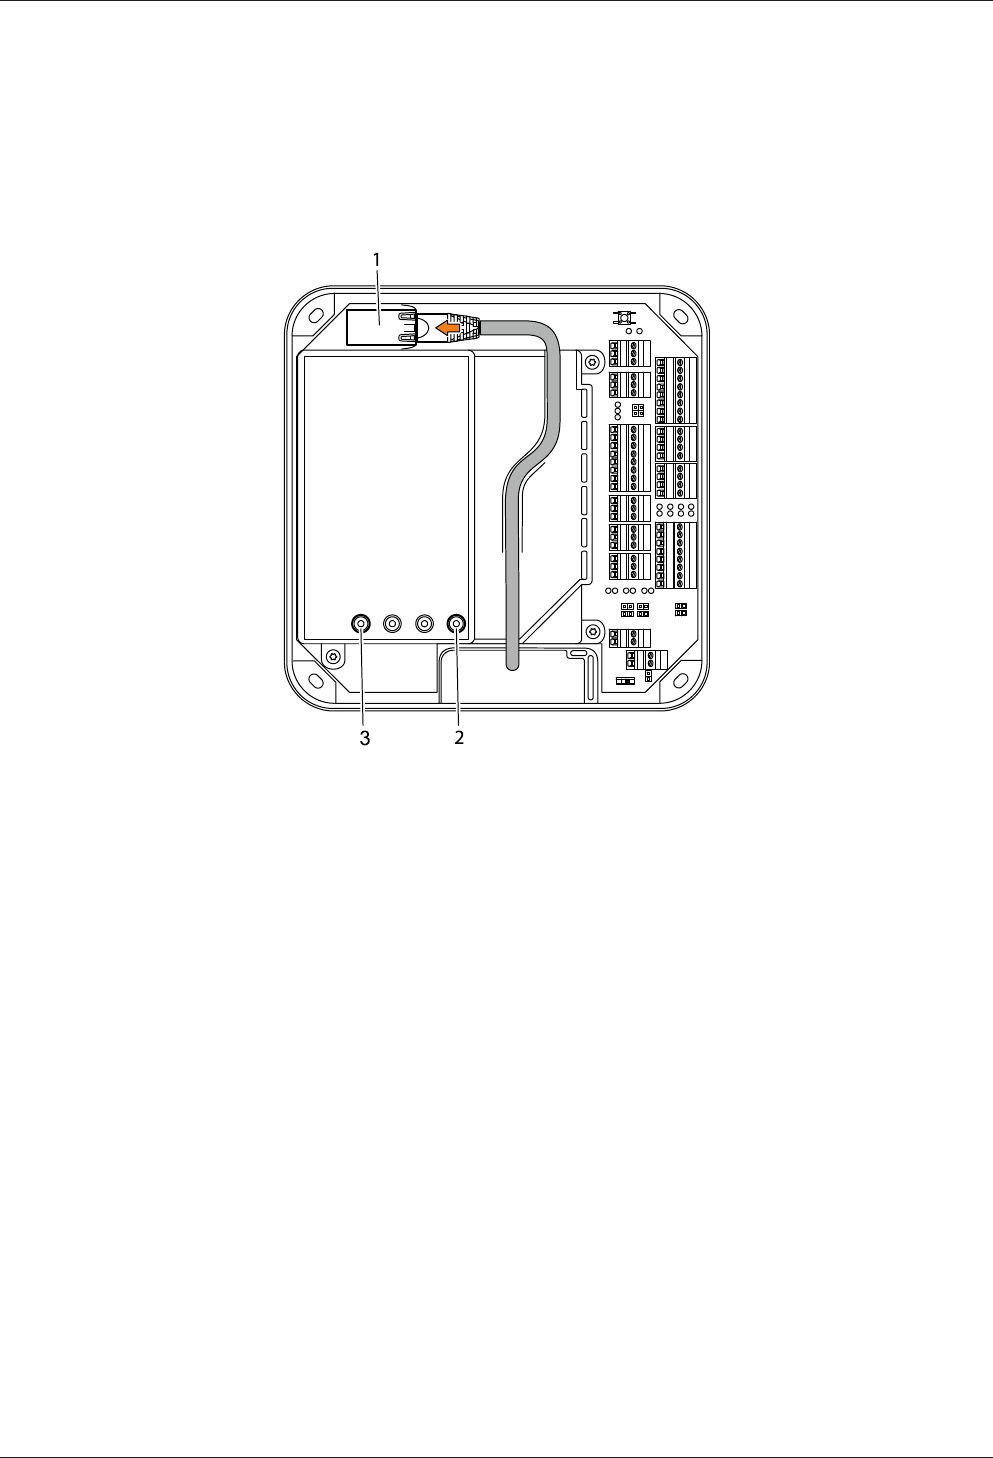 dormakaba EAD KAM9230-K5 RFID Reader User Manual TM 9230